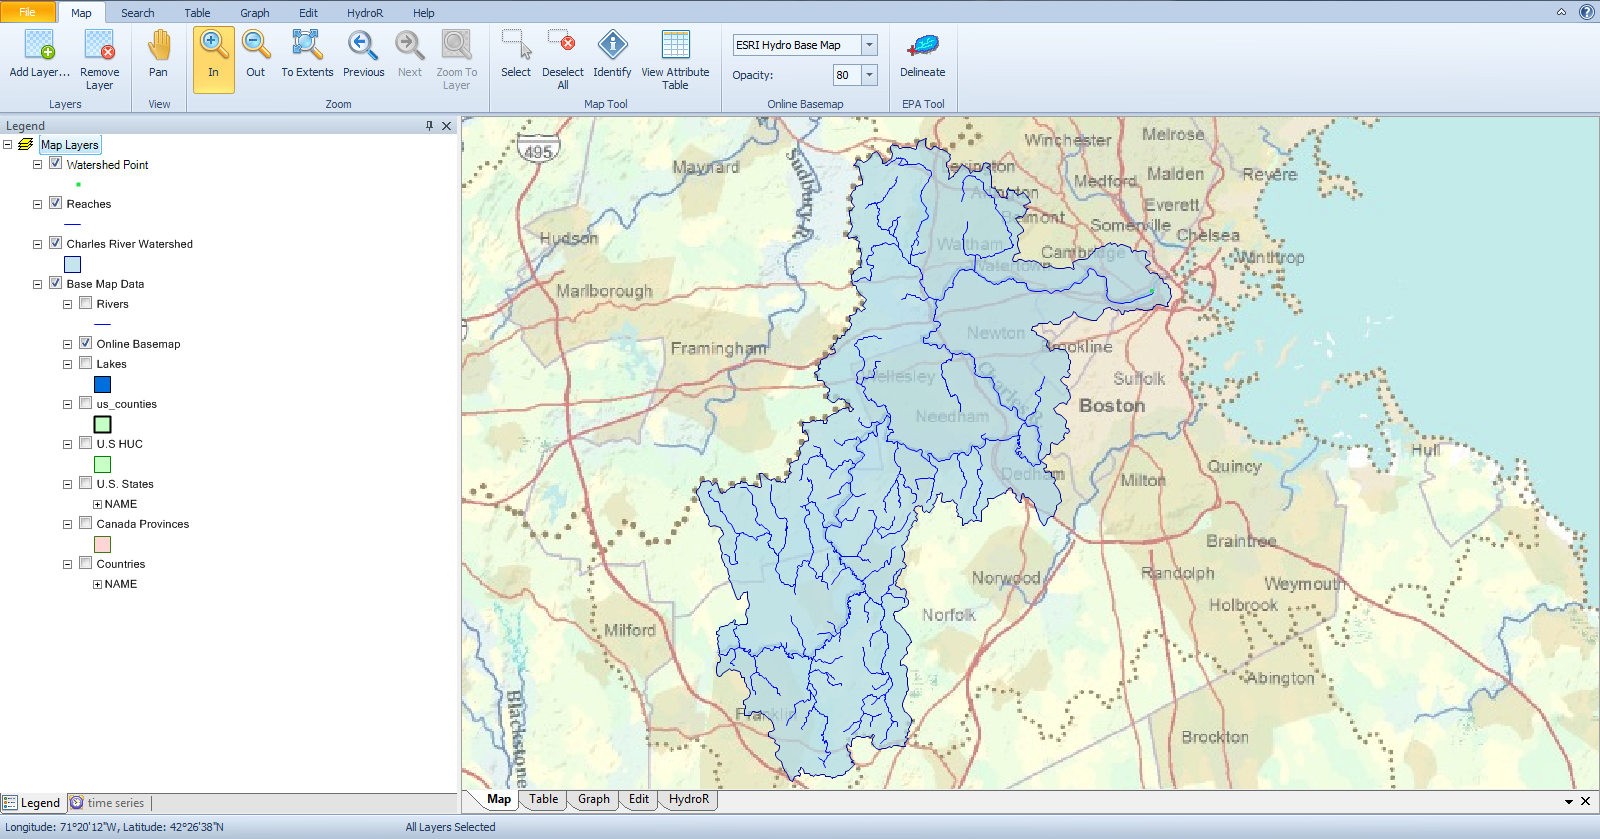 to activate the watershed polygon for use in searching for data 1 simply click to highlight the layer in the legend and 2 use the select features tool